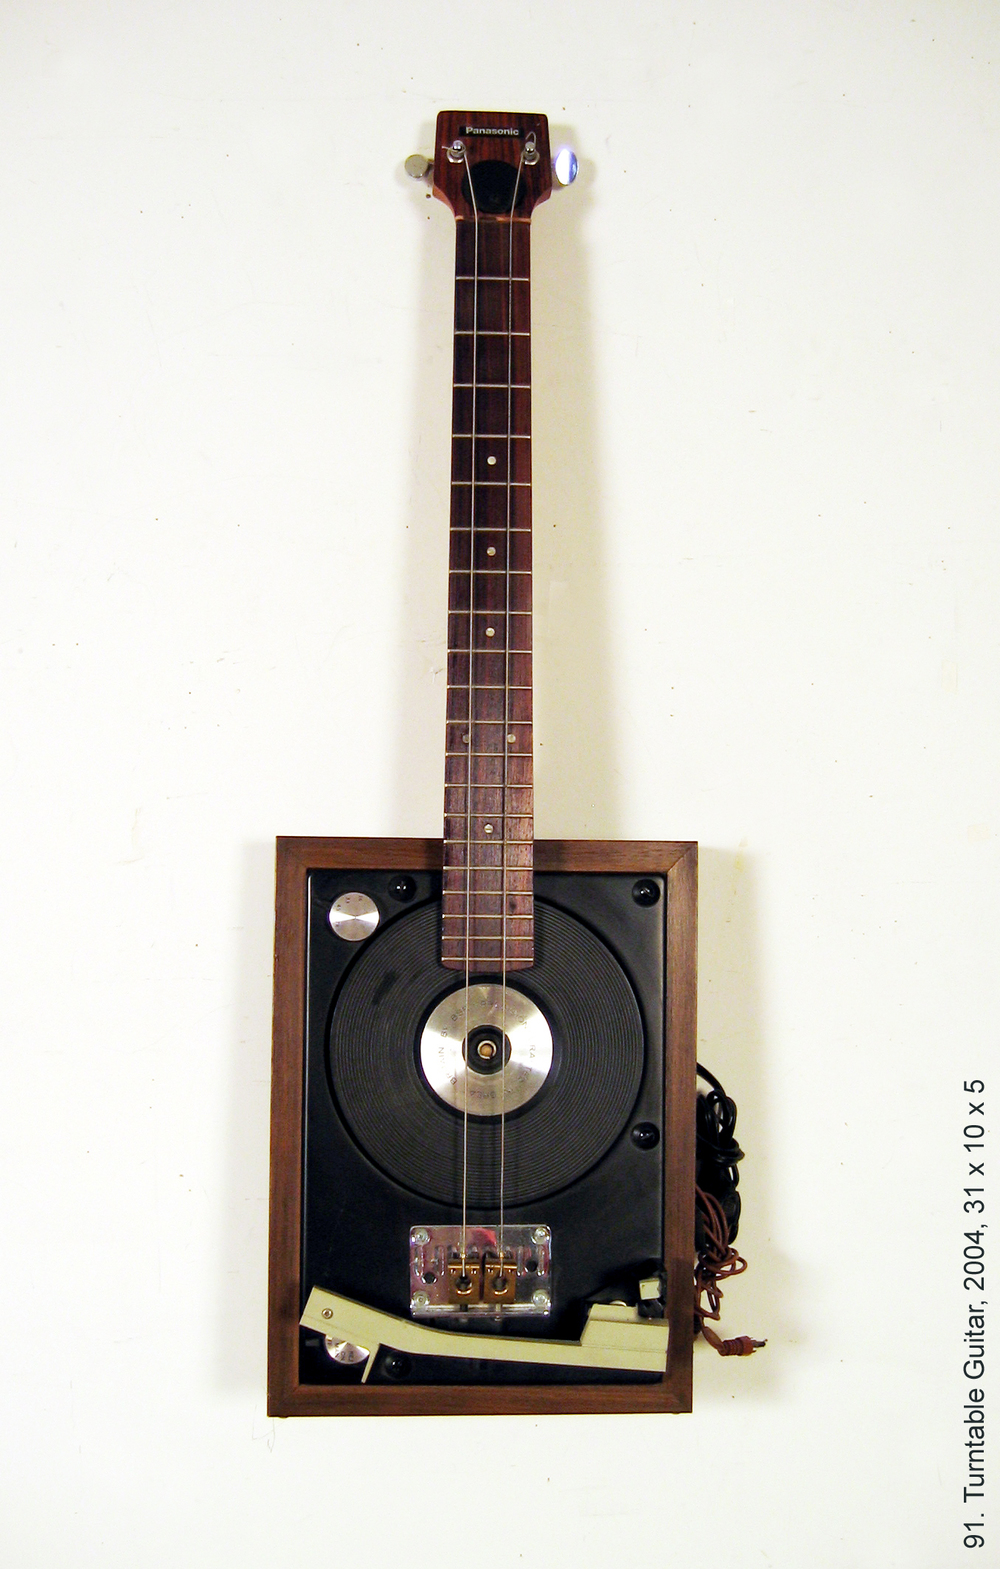 91 Turntable Guitar wt.jpg